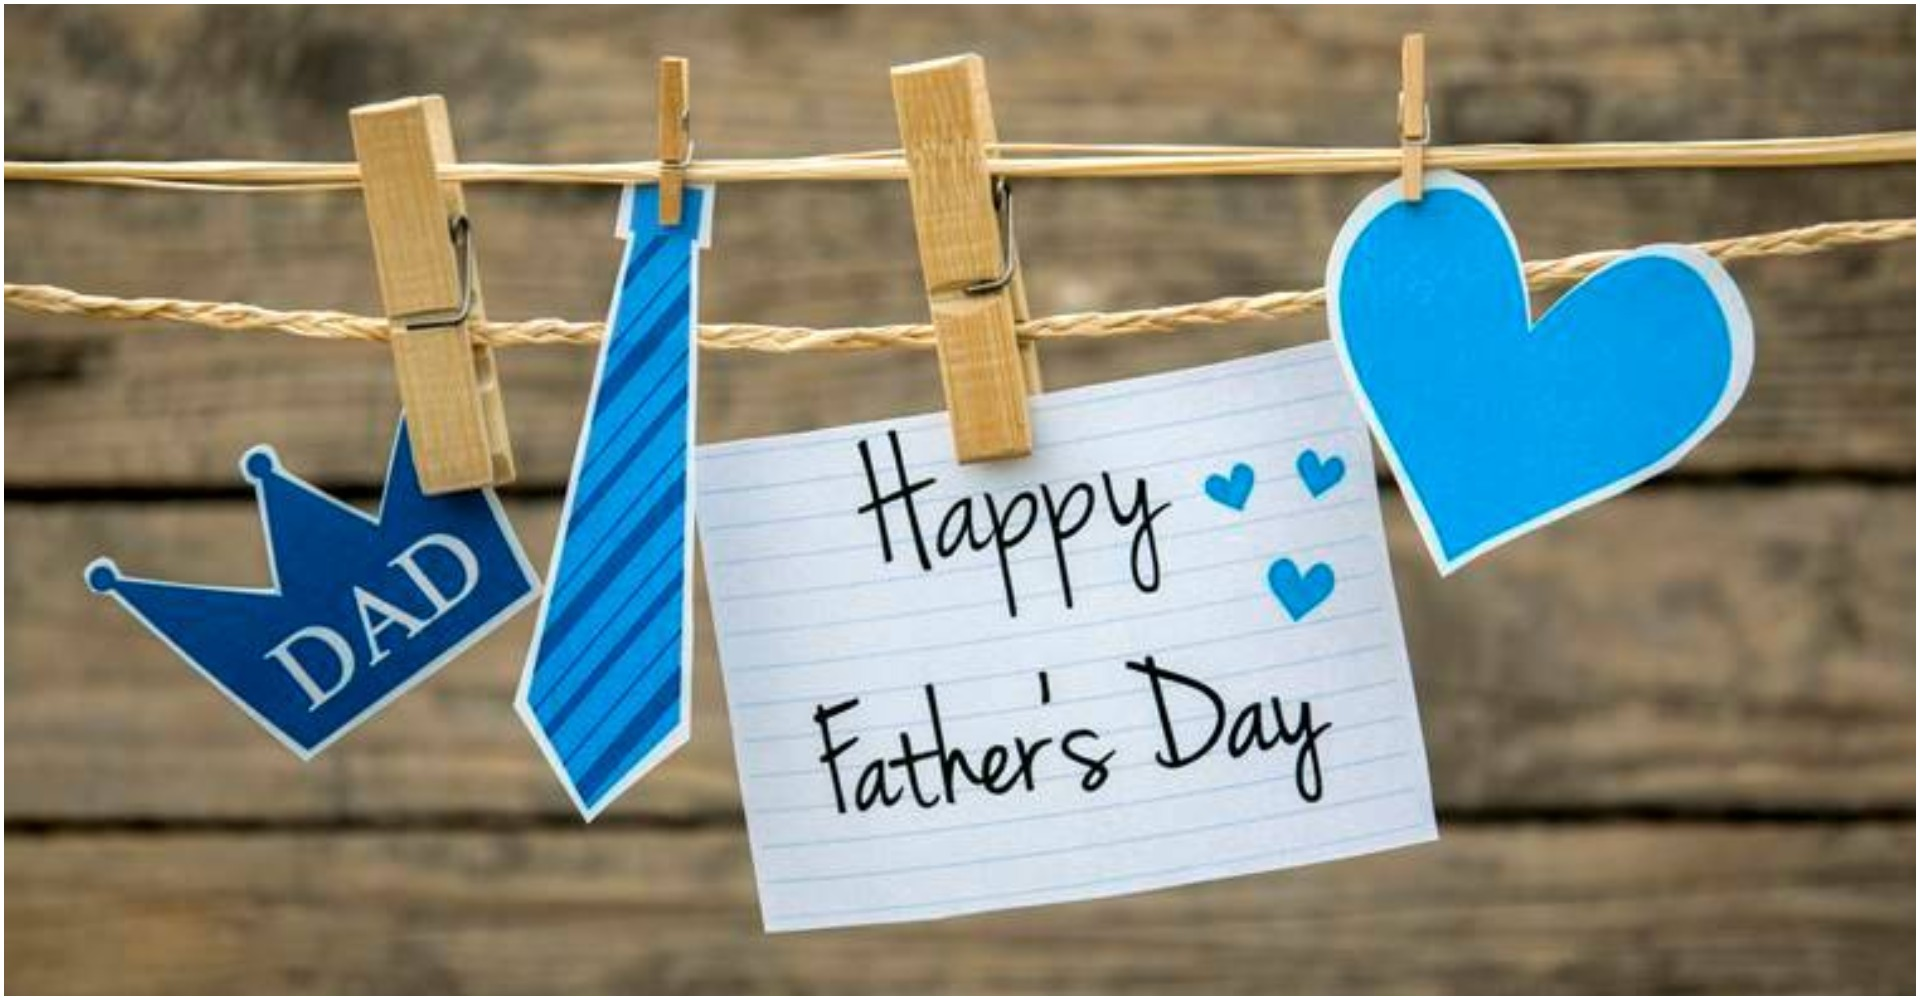 Happy Early Father's Day Images